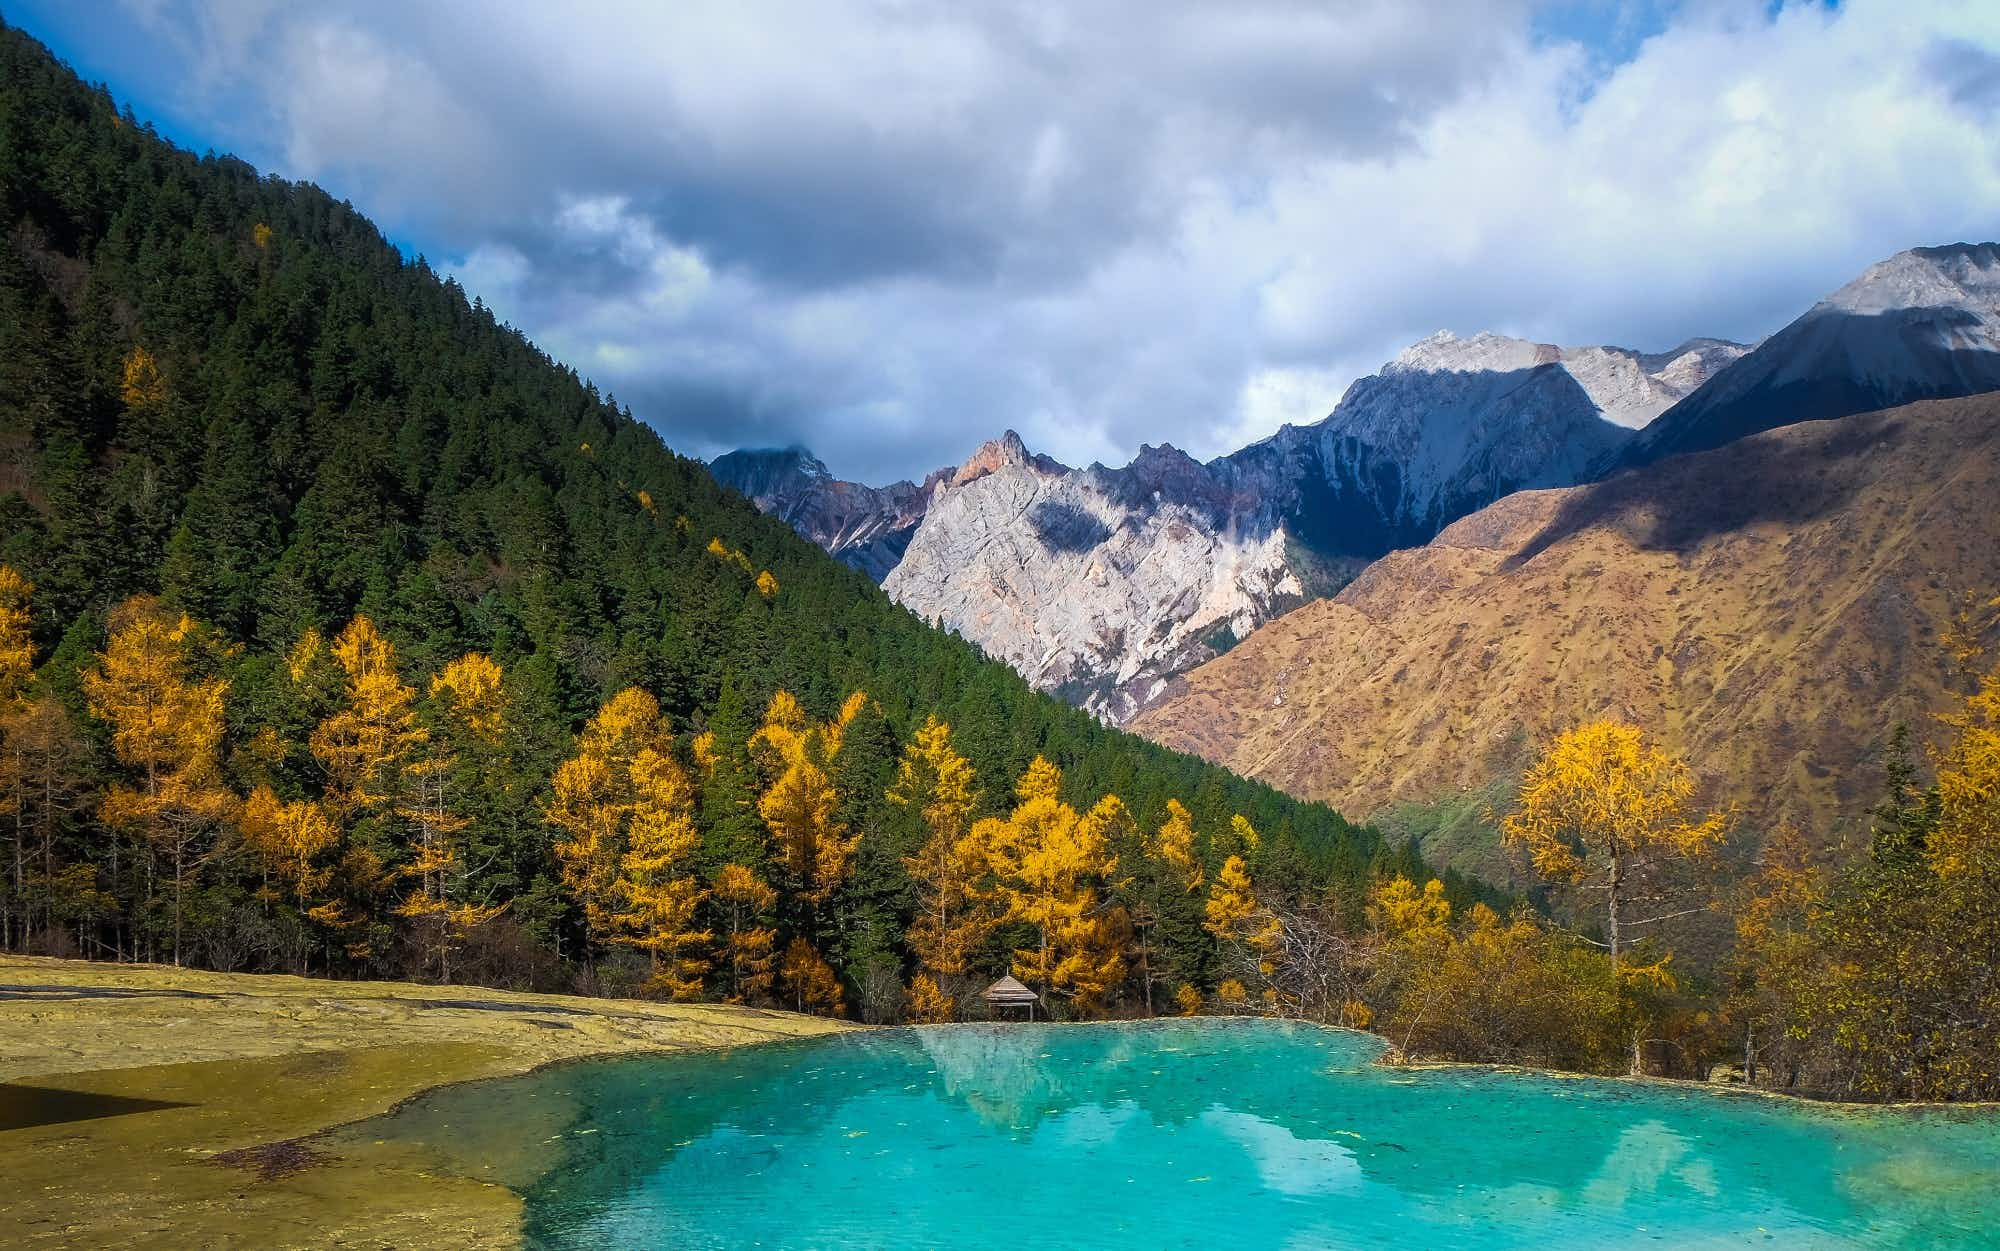 China's splendid Jiuzhaigou National Park to finally reopen after last year's earthquake